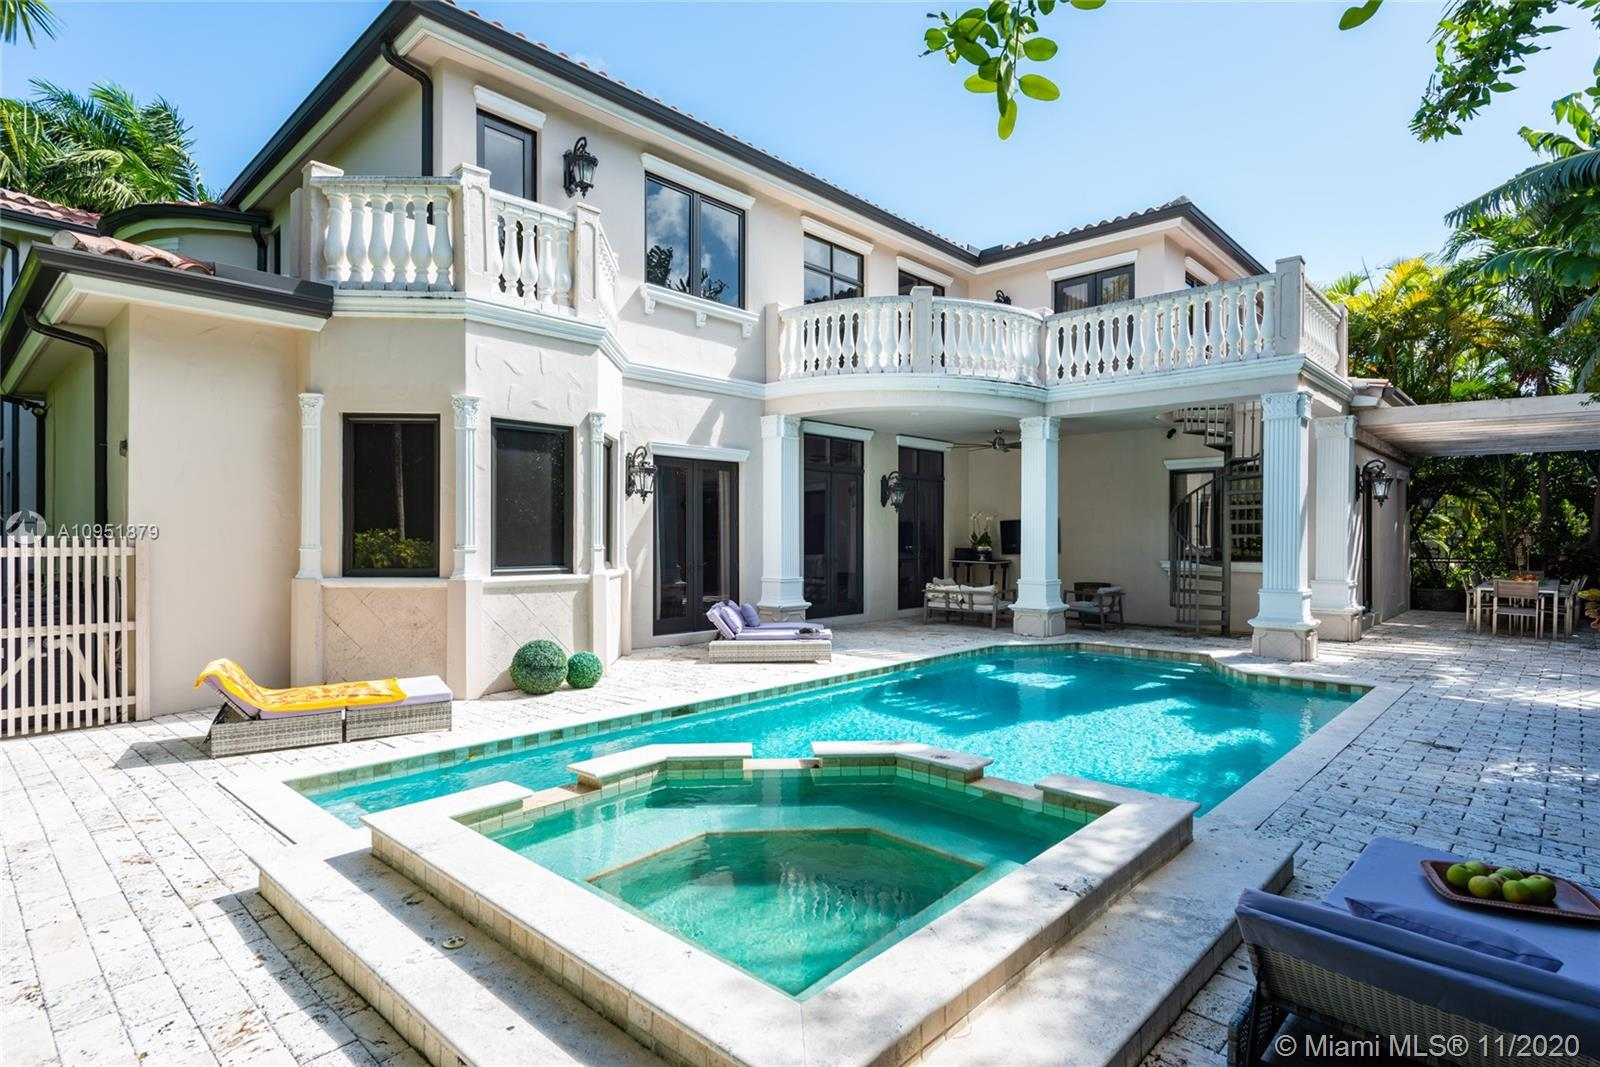 Situated within the exclusive Village of Bal Harbour , this superb residence contains 6 bedrooms and